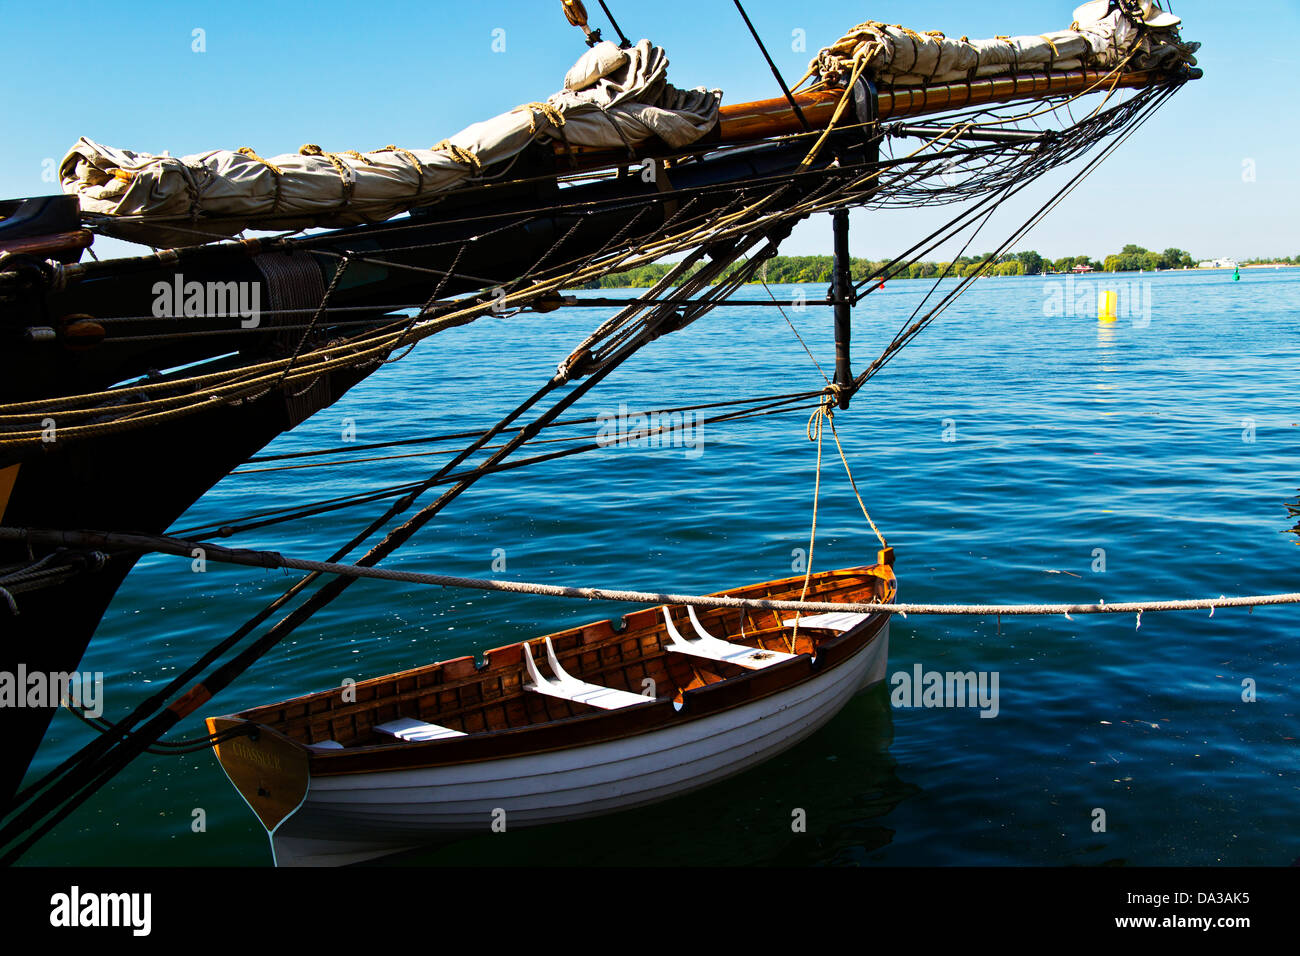 Life boat tied to tall ship in harbor - Stock Image